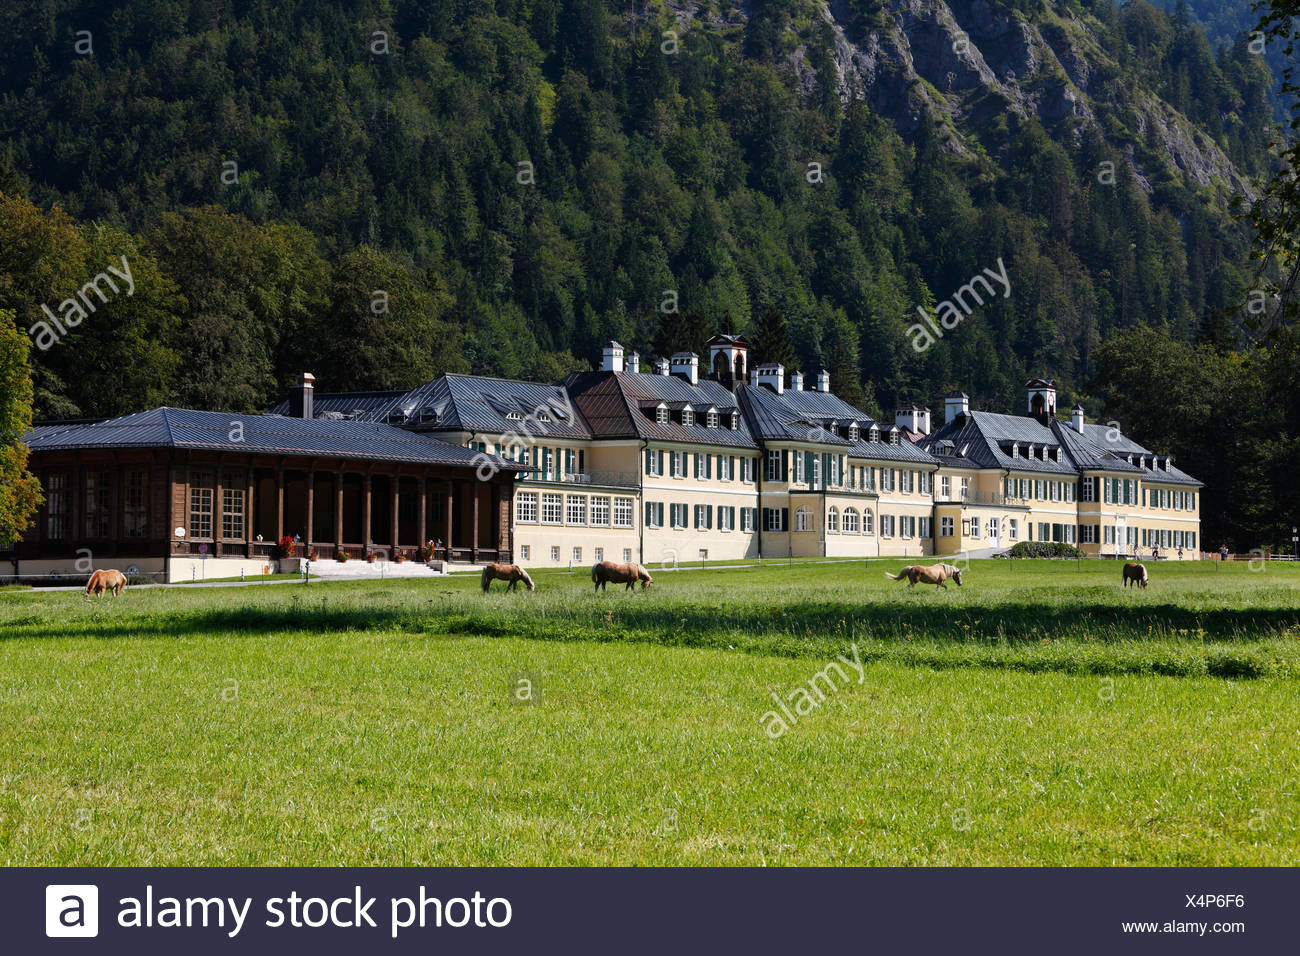 Neues Bad, educational centre of the Hanns-Seidel-Stiftung, Wildbad Kreuth, Tegernsee Valley, Upper Bavaria, Bavaria - Stock Image